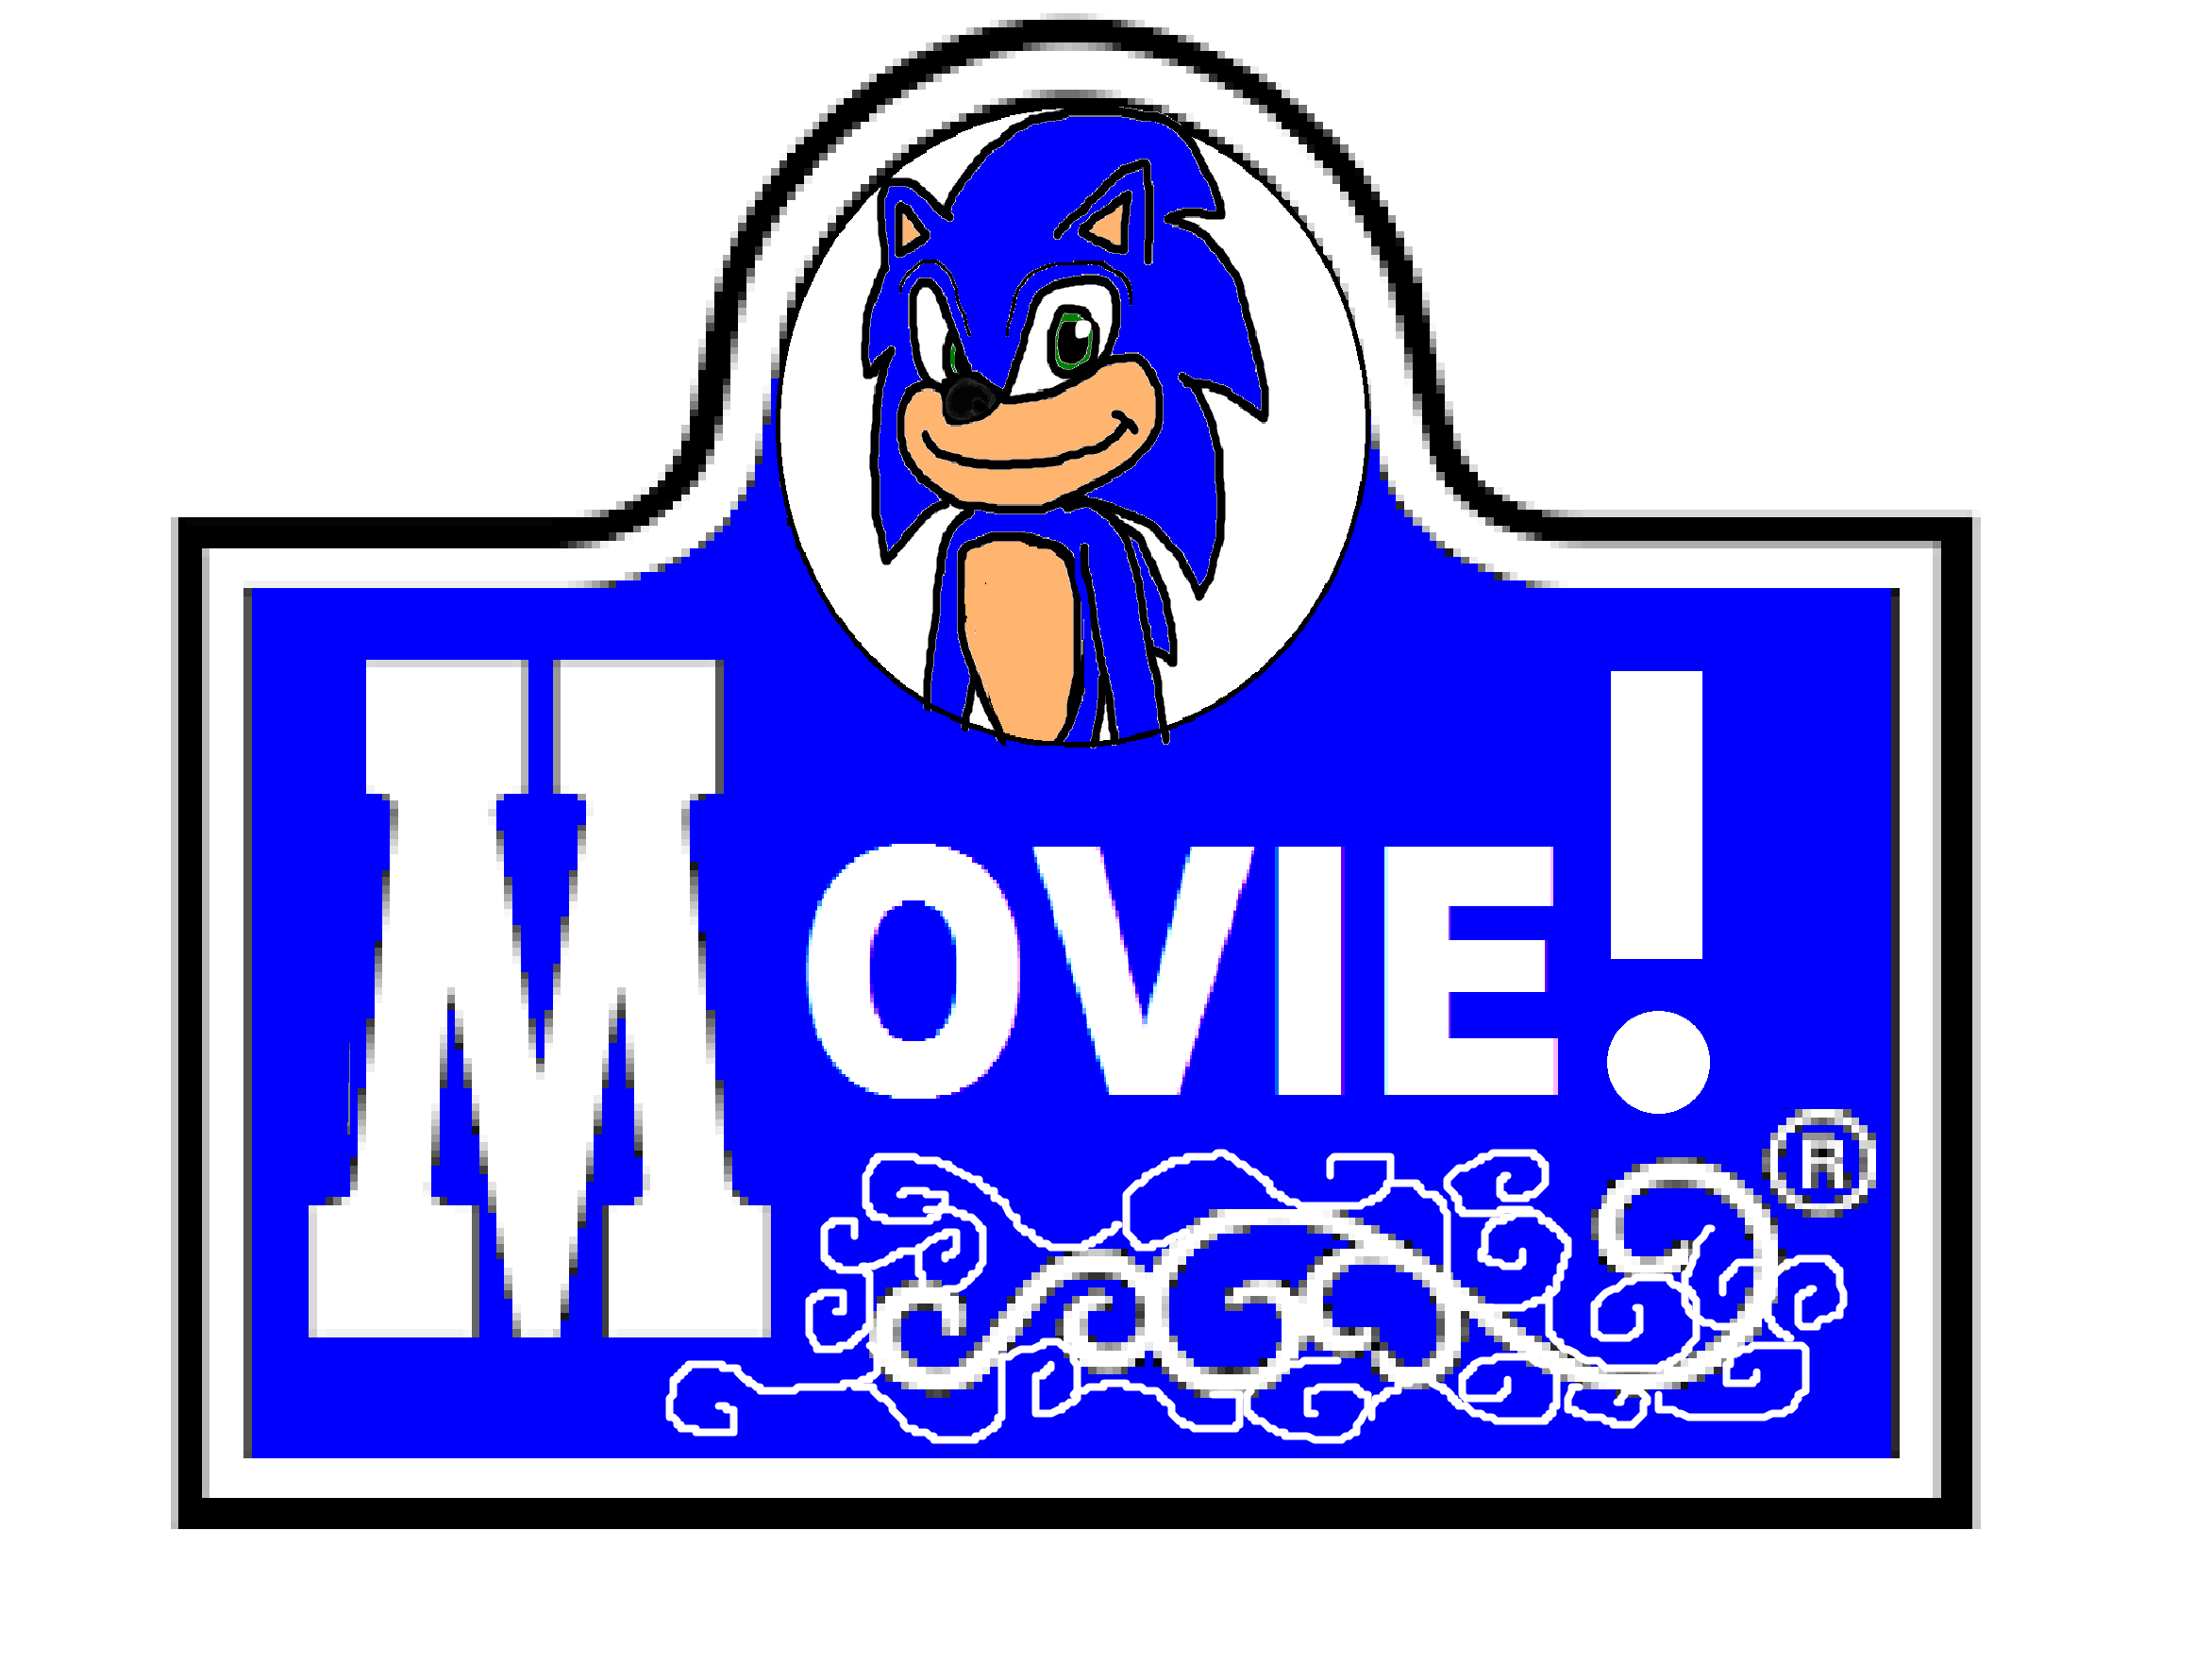 Movie! Sonic as Wendy\'s Logo in 2019.